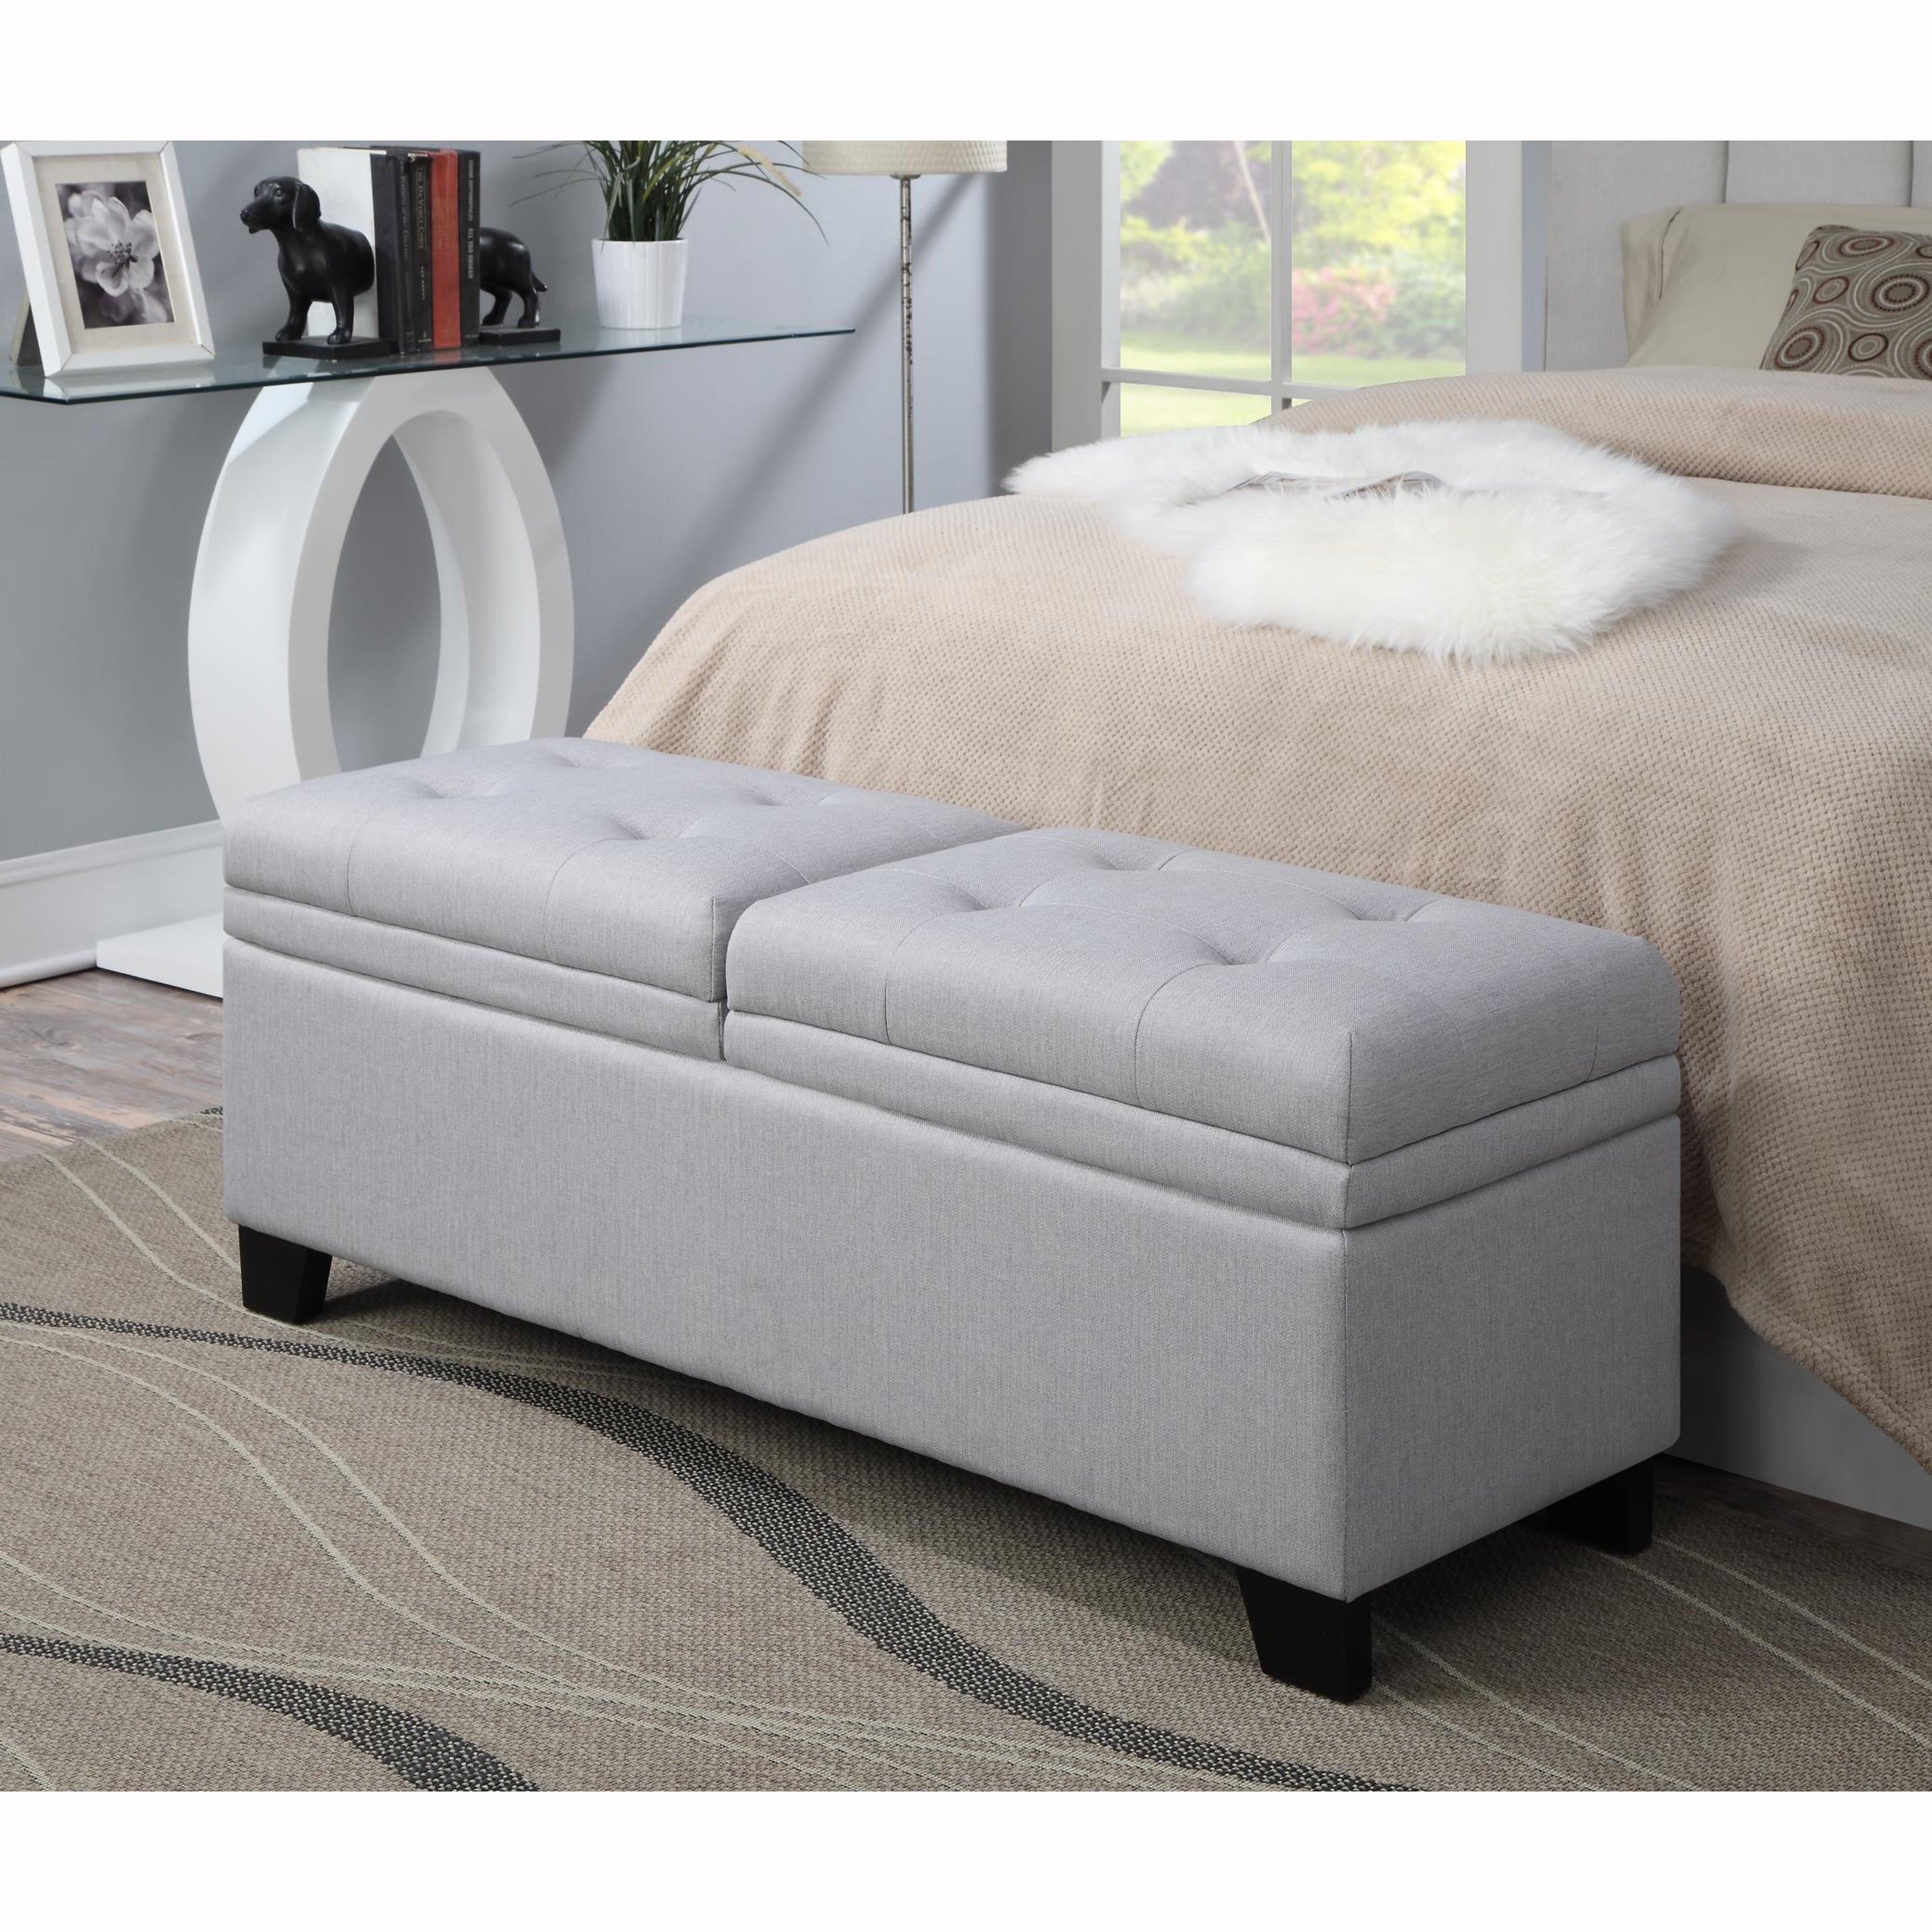 Slate Grey Tufted Upholstered Storage Bench Ottoman On Sale Overstock 10054031